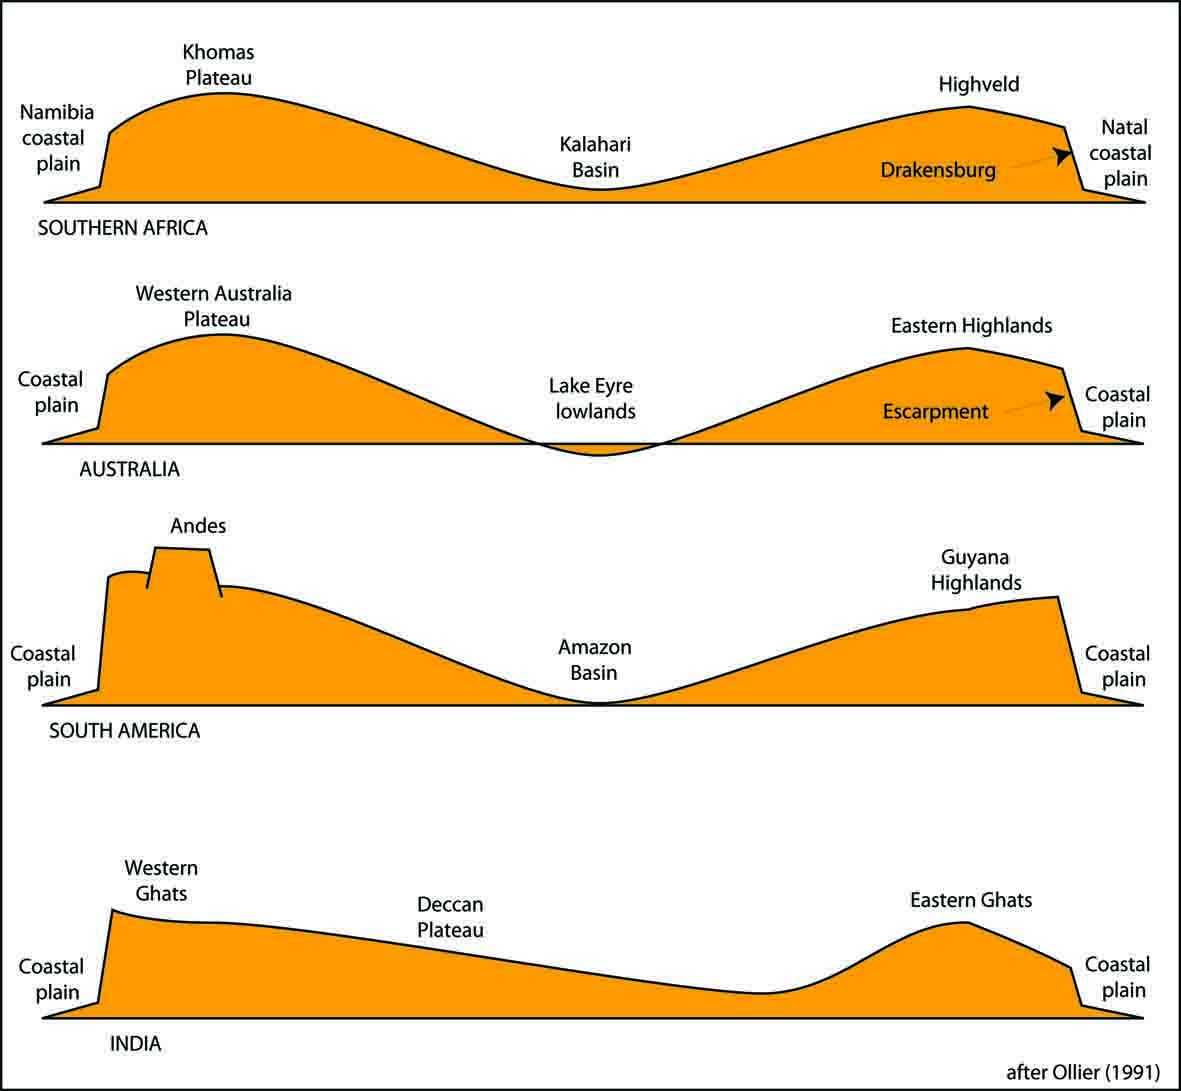 hight resolution of schematic cross sections of southern africa australia south america and india